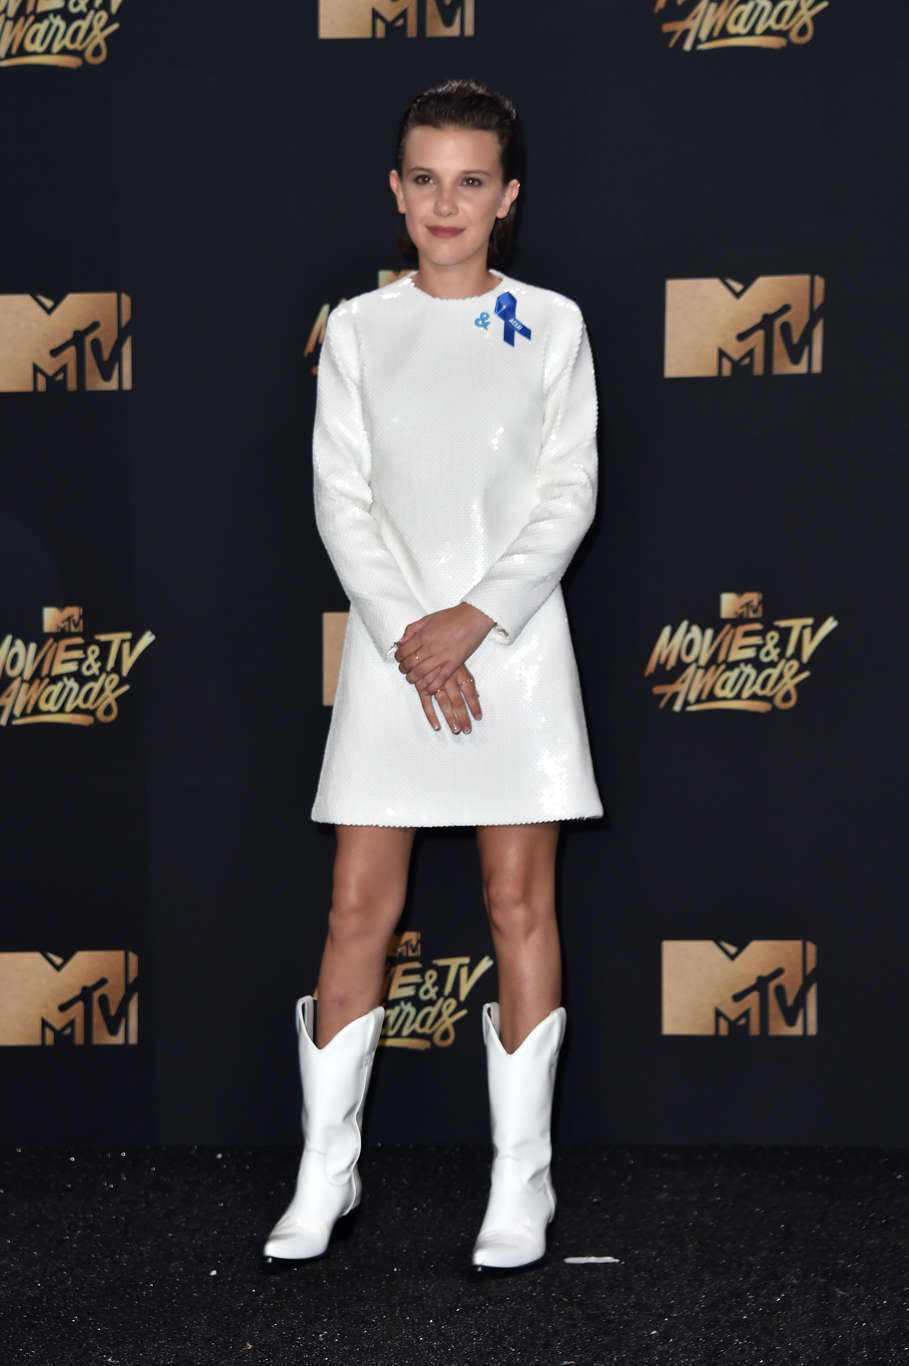 LOS ANGELES, CA - MAY 07: Actor Millie Bobby Brown, winner of Best Actor in a Show for 'Stranger Things', poses in the press room during the 2017 MTV Movie And TV Awards at The Shrine Auditorium on May 7, 2017 in Los Angeles, California. (Photo by Alberto E. Rodriguez/Getty Images)